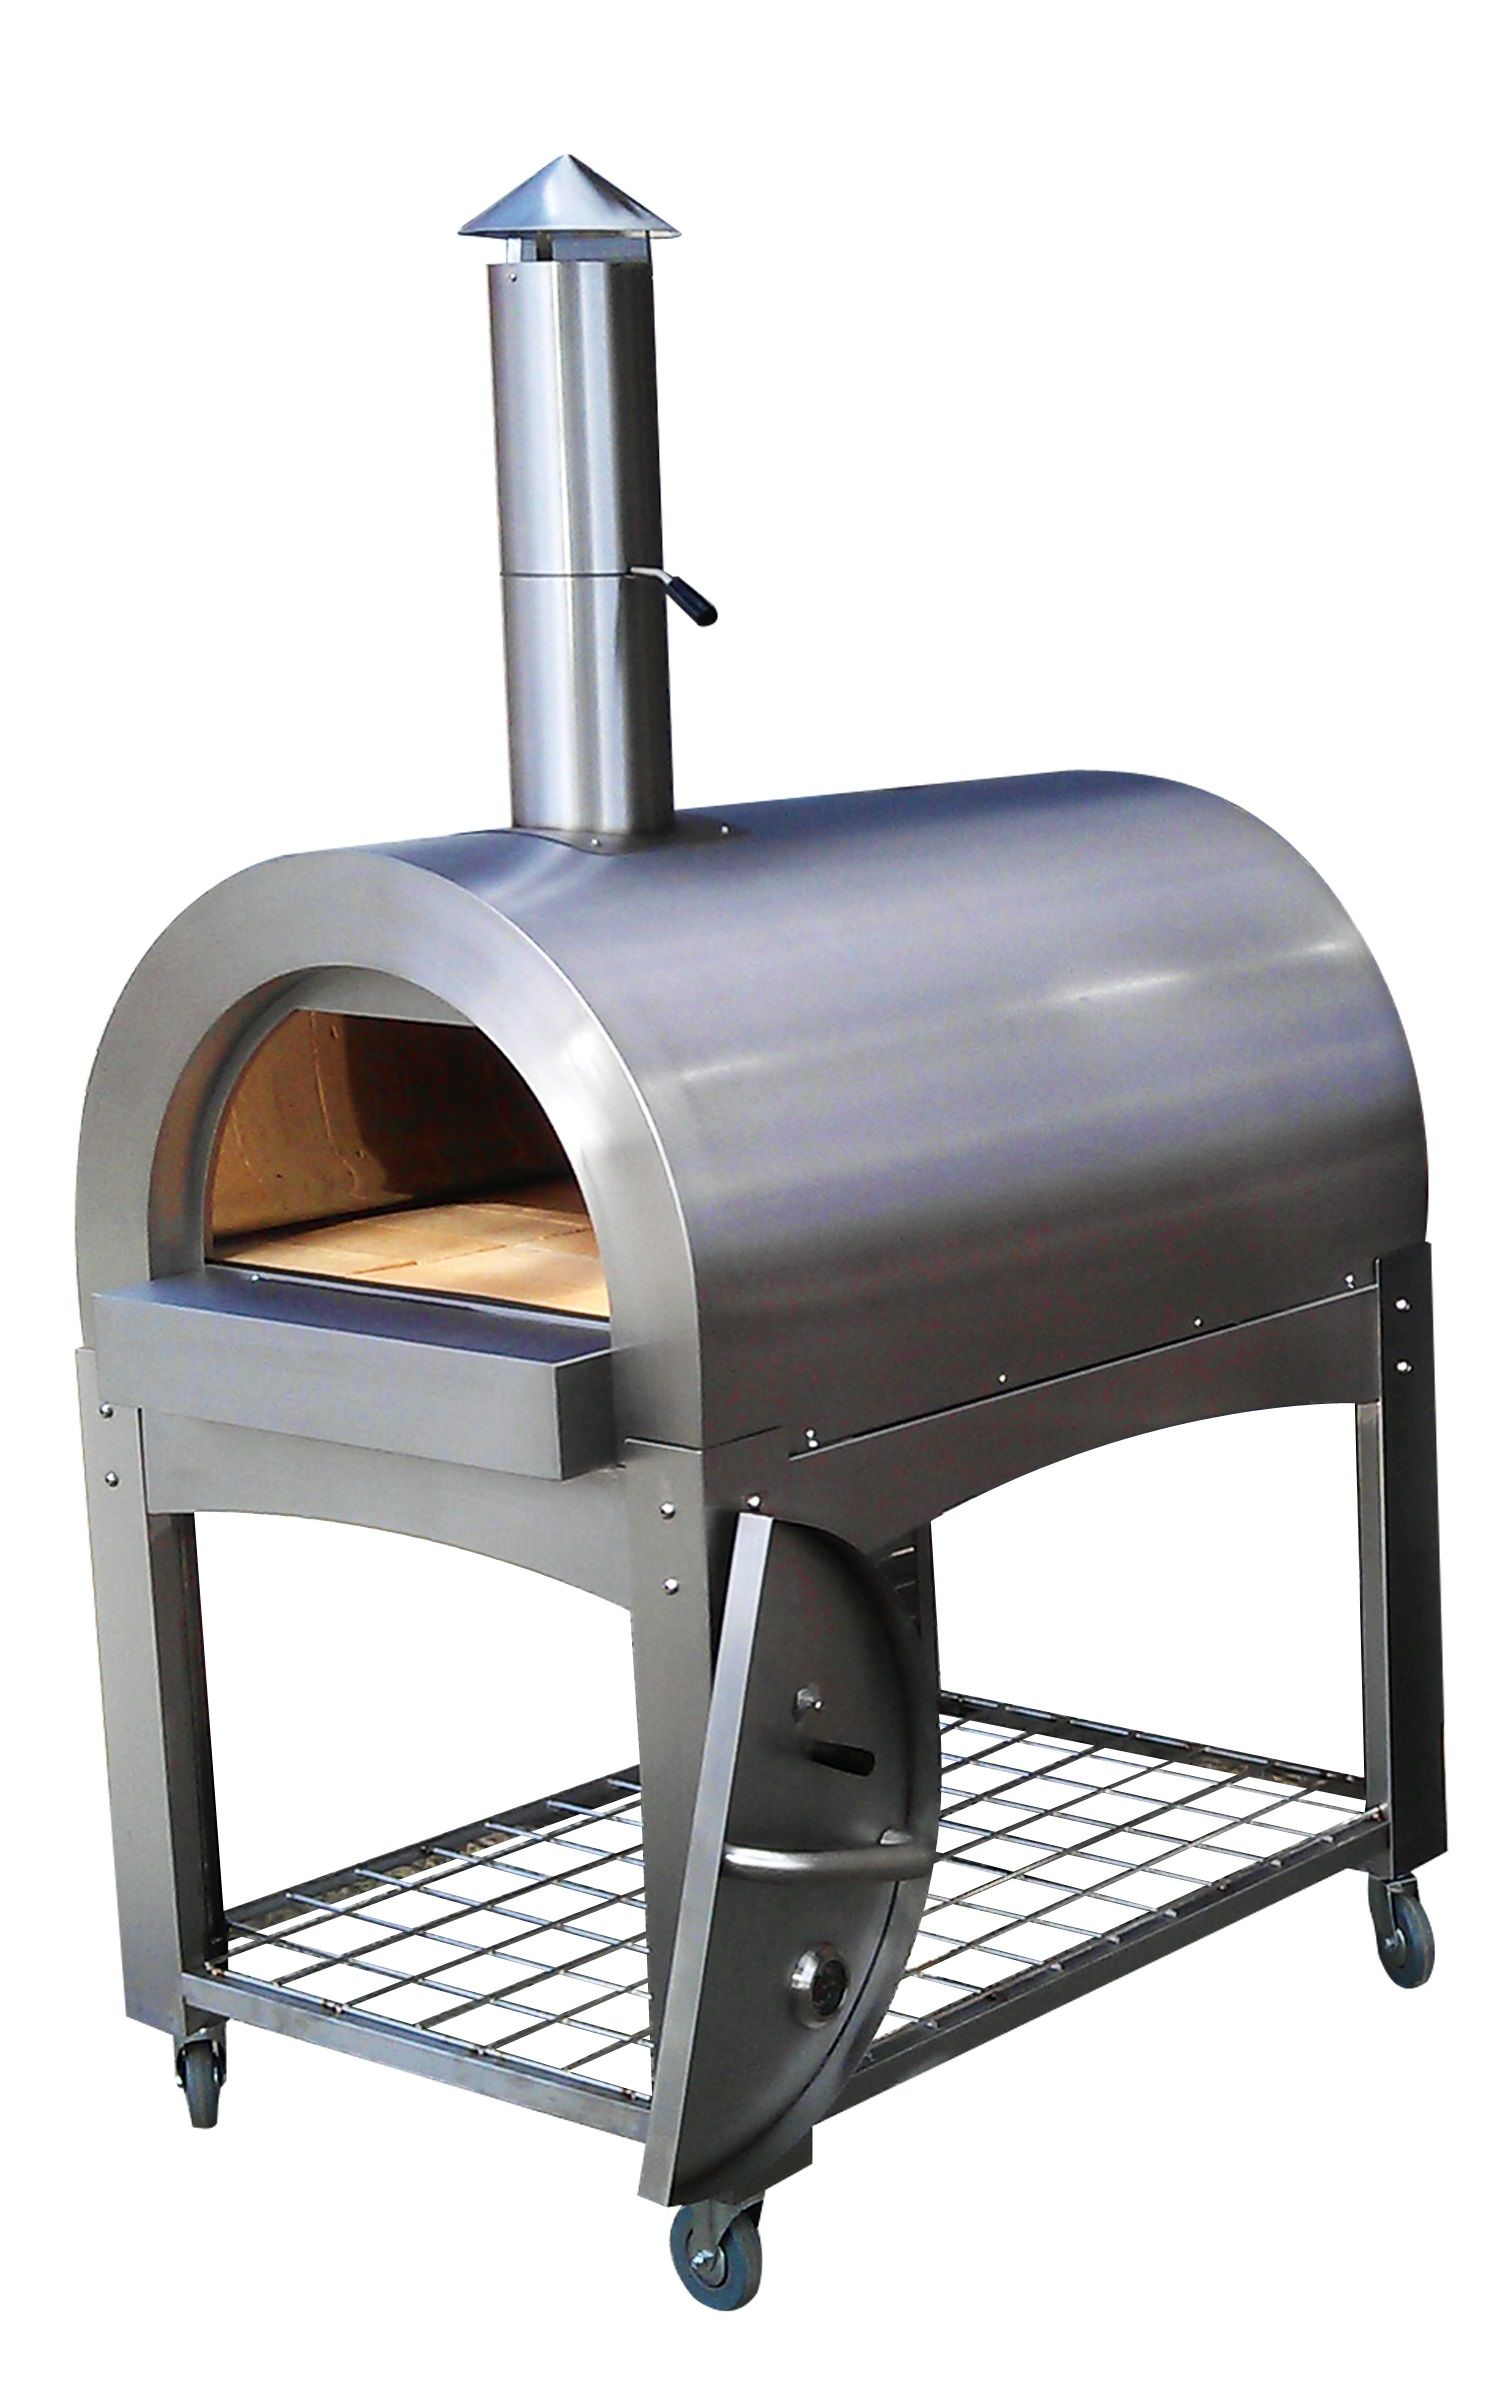 Delightful Portable Wood Fired Oven